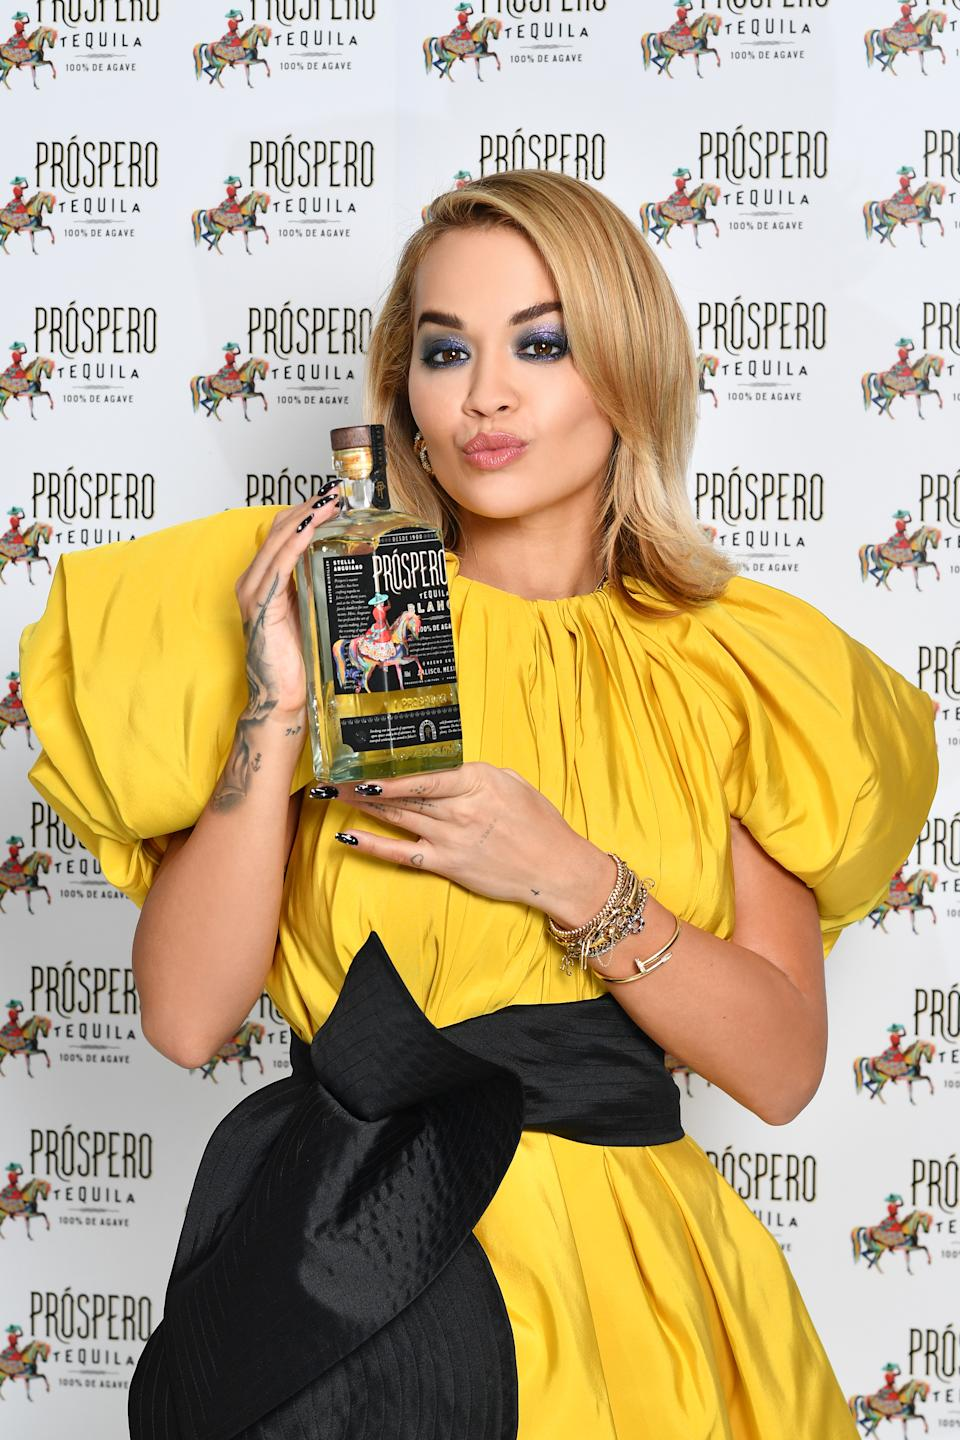 Rita Ora launched her own brand of tequila in the week she turned 30 (Photo by Gareth Cattermole/Getty Images for ABA)